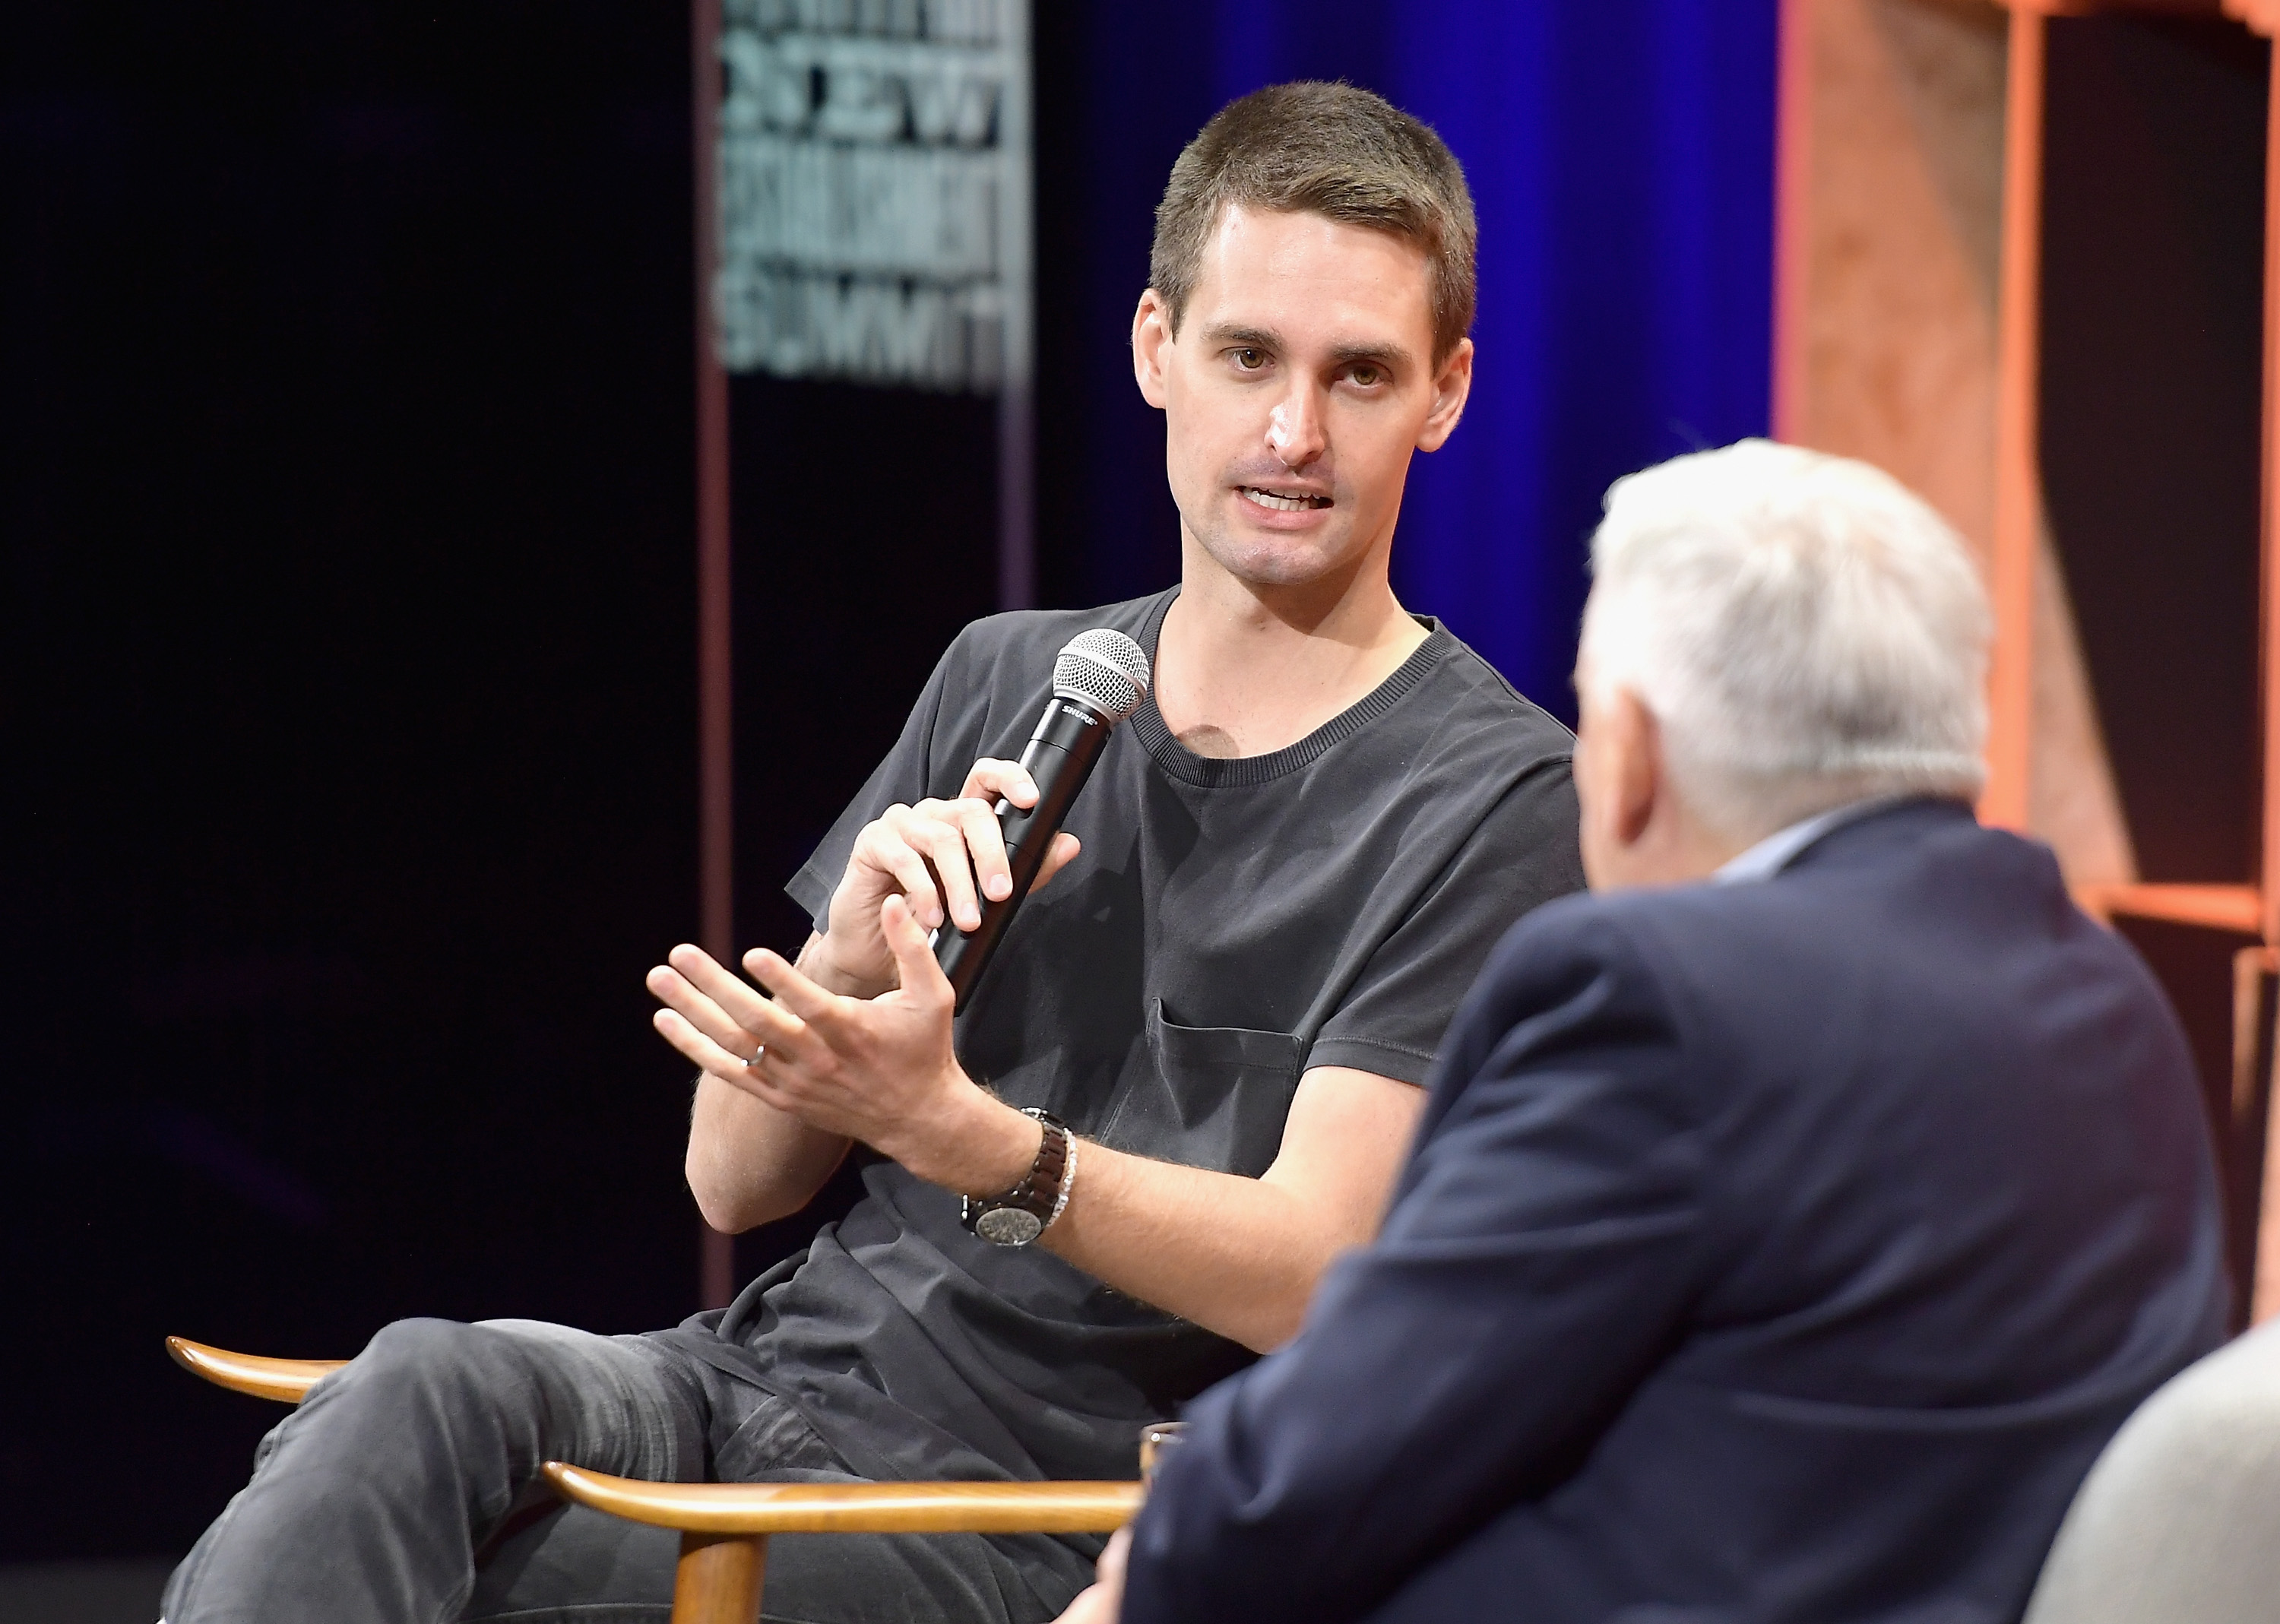 Snap CEO Evan Spiegel onstage holding a microphone